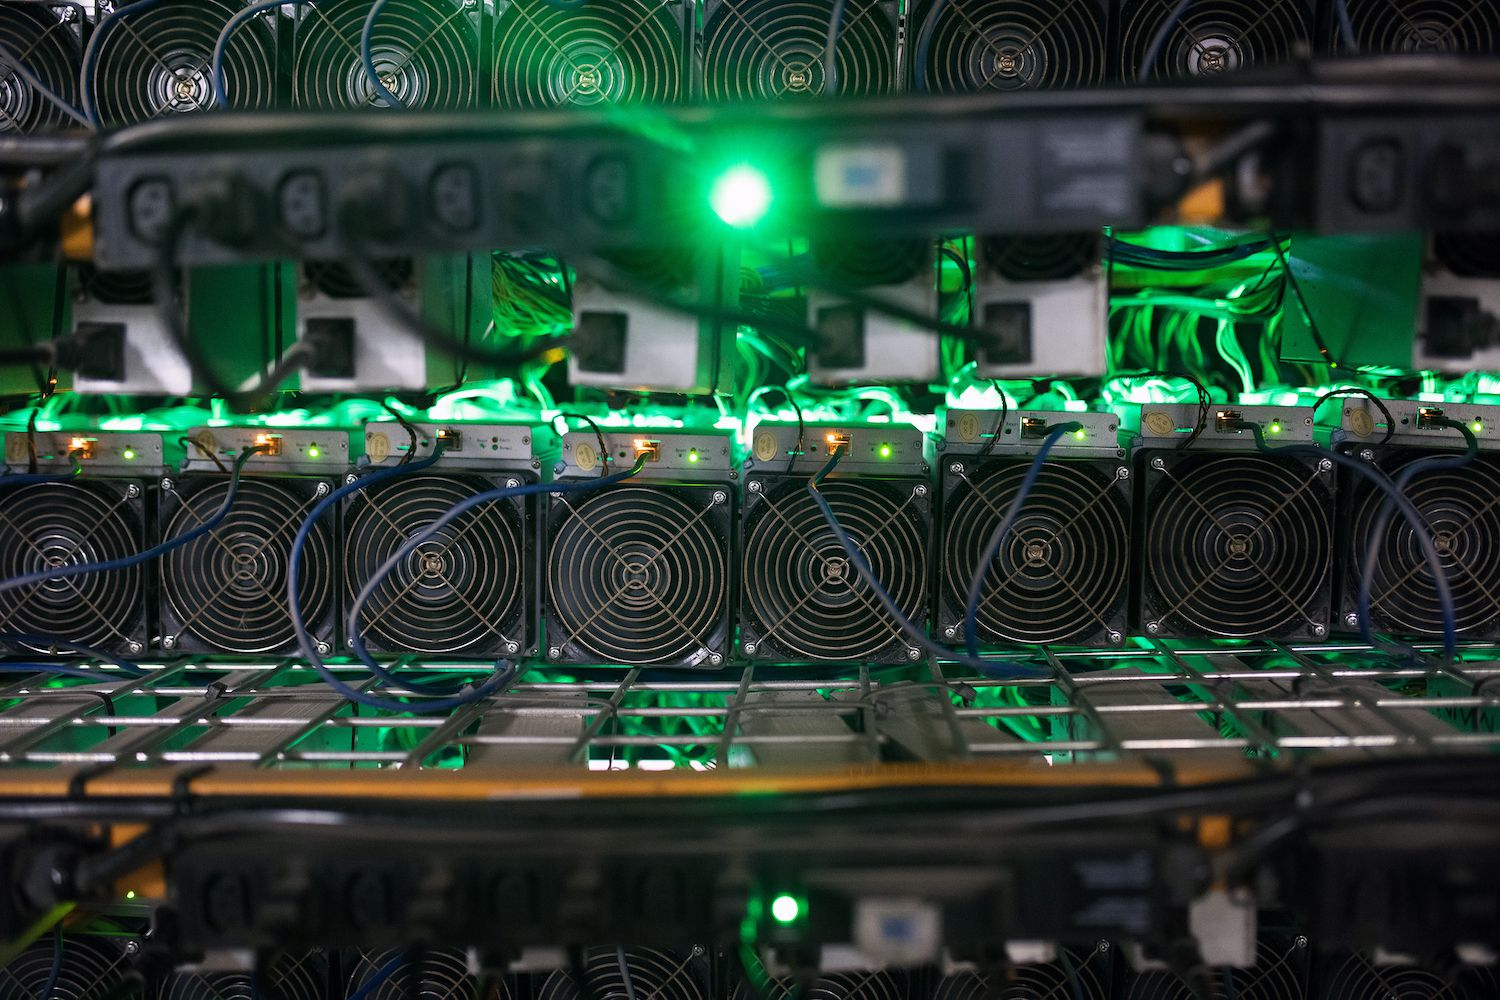 Gryphon Digital Mining to Buy 7.2K S19J Pro Antminers From Bitmain for $48M